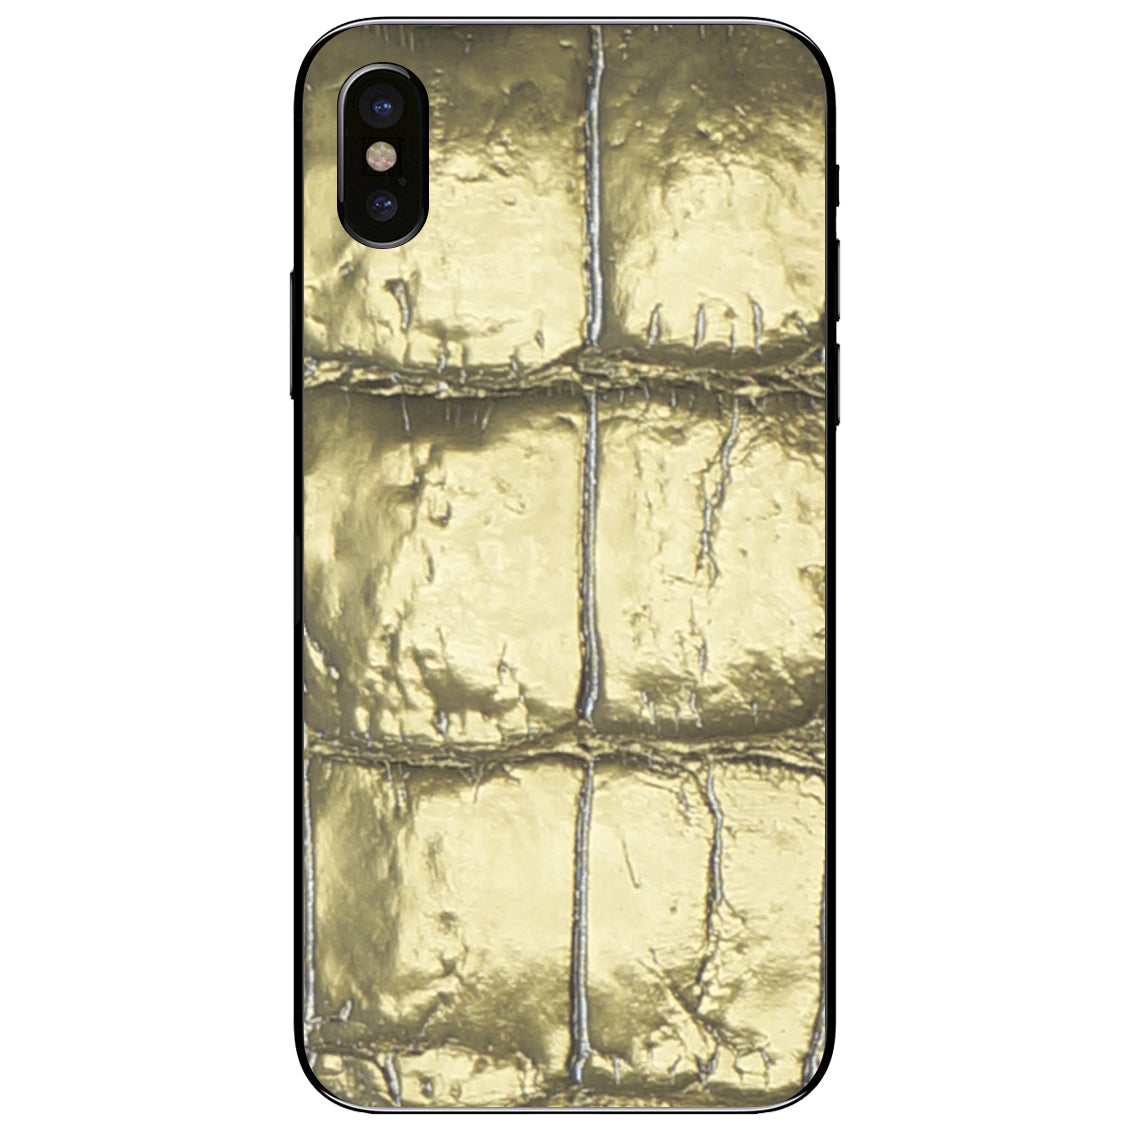 Gold Alligator iPhone X Leather Skin